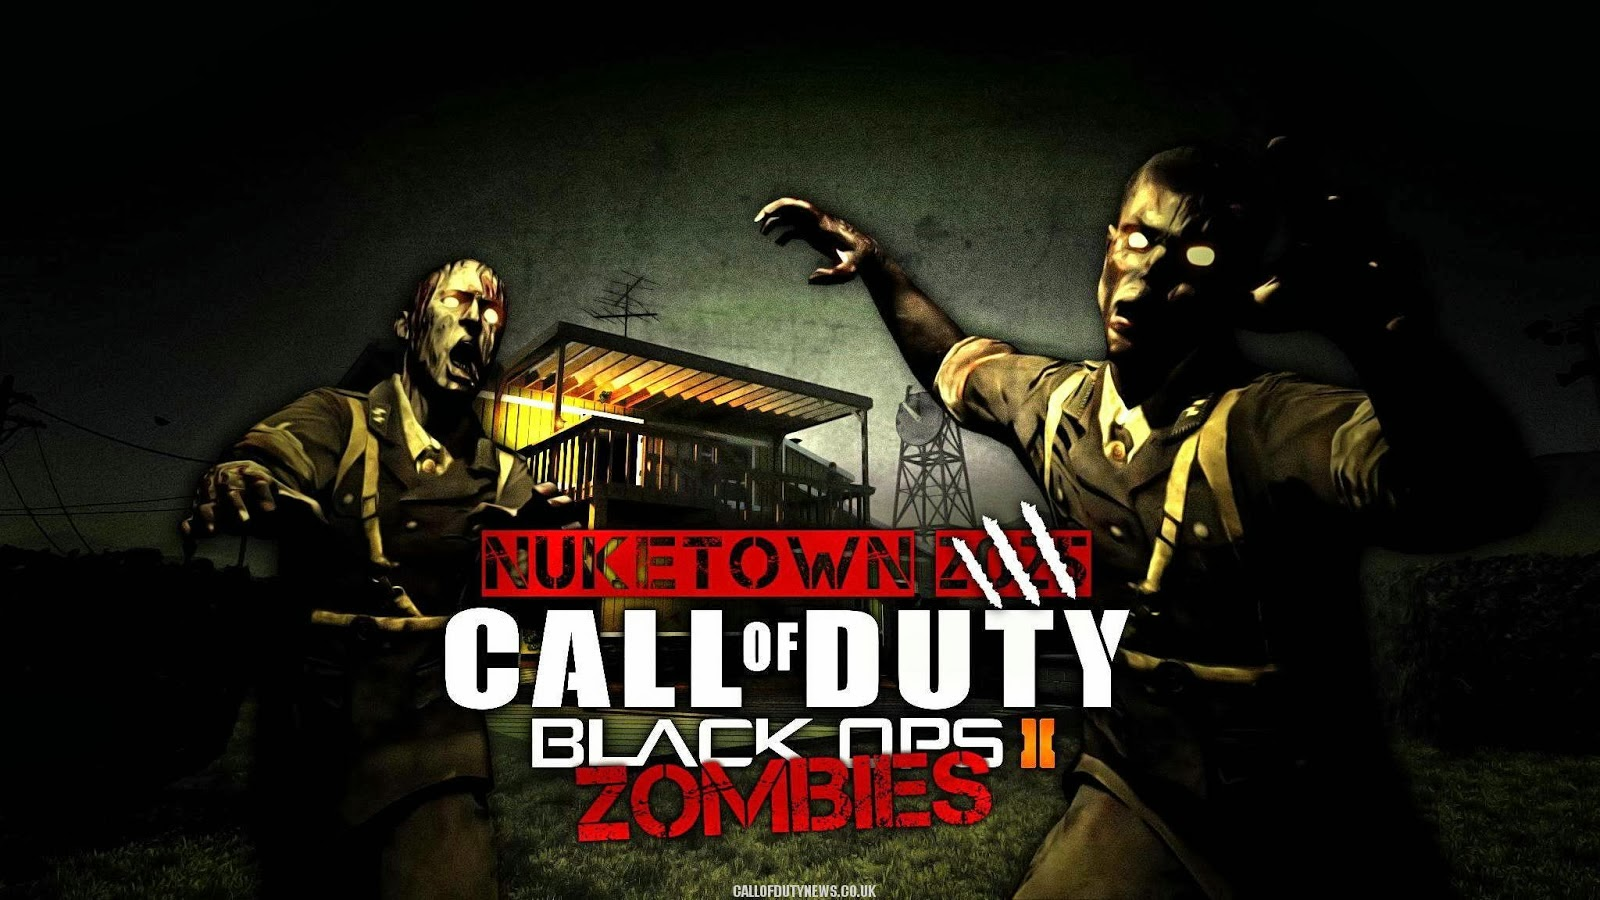 Fondo de Pantalla Juegos Call of duty black ops ii zombies nuketown ...